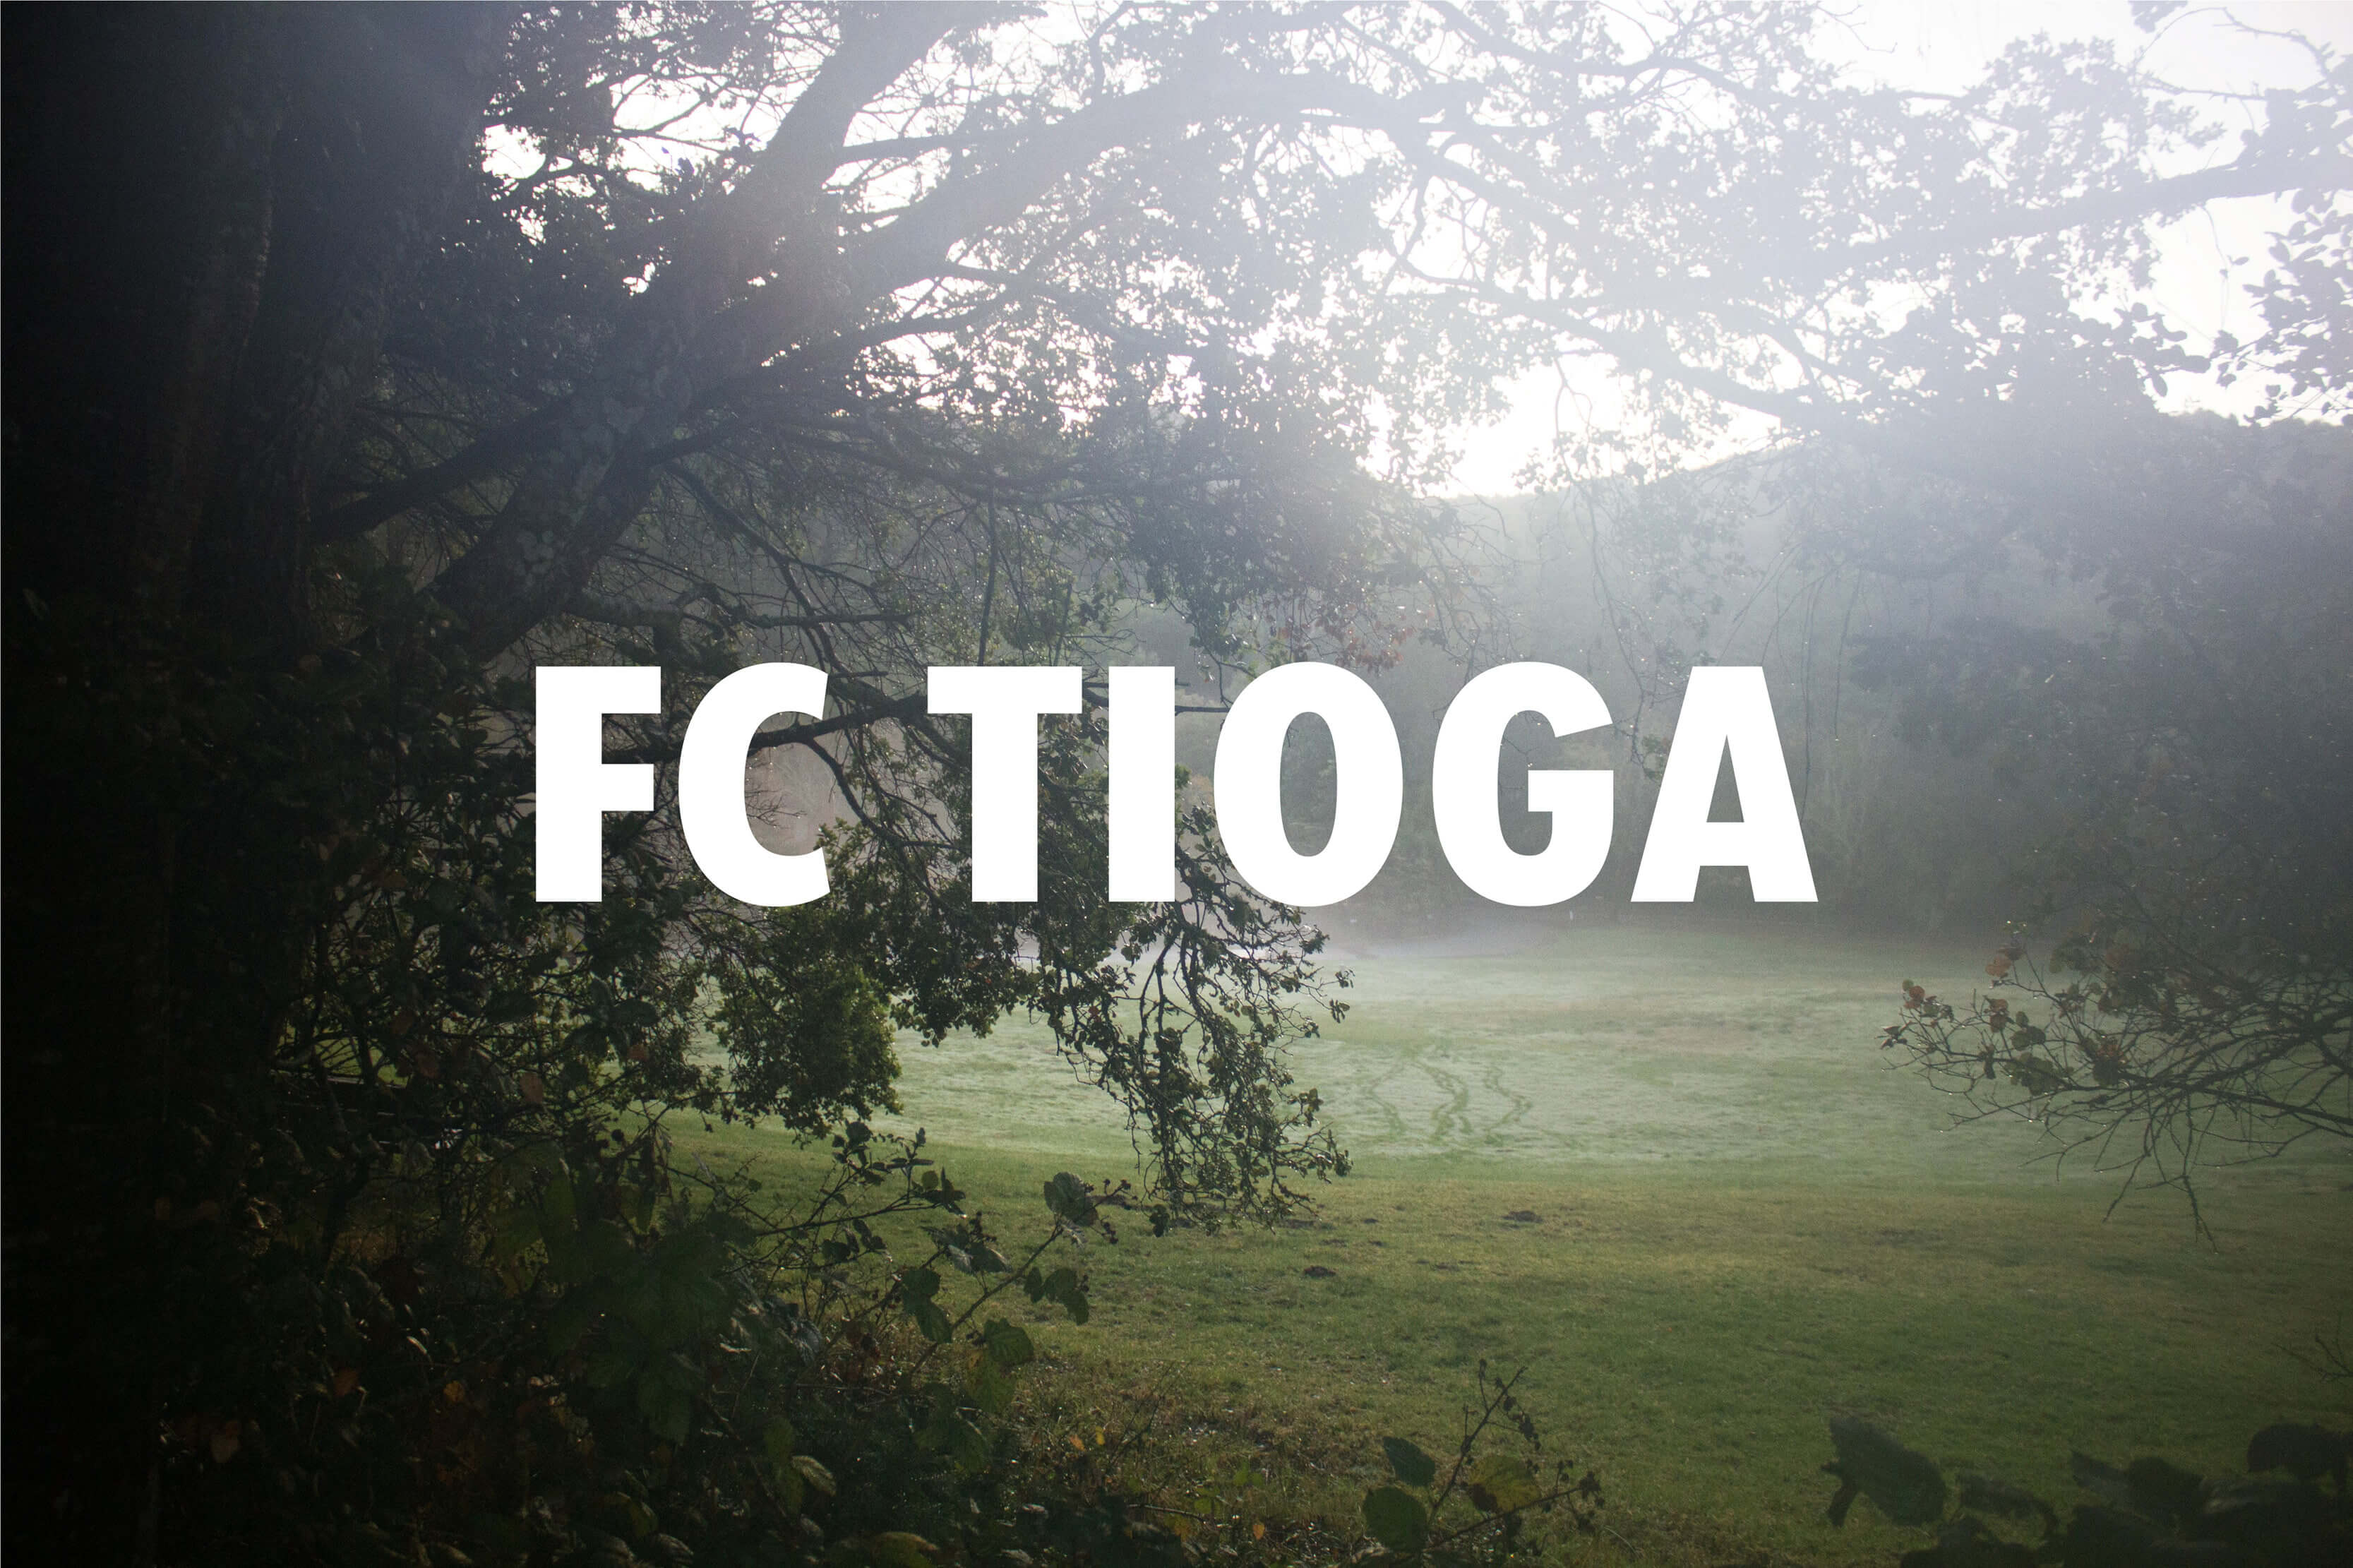 GOOD FISHING - FC Tioga Lookbook